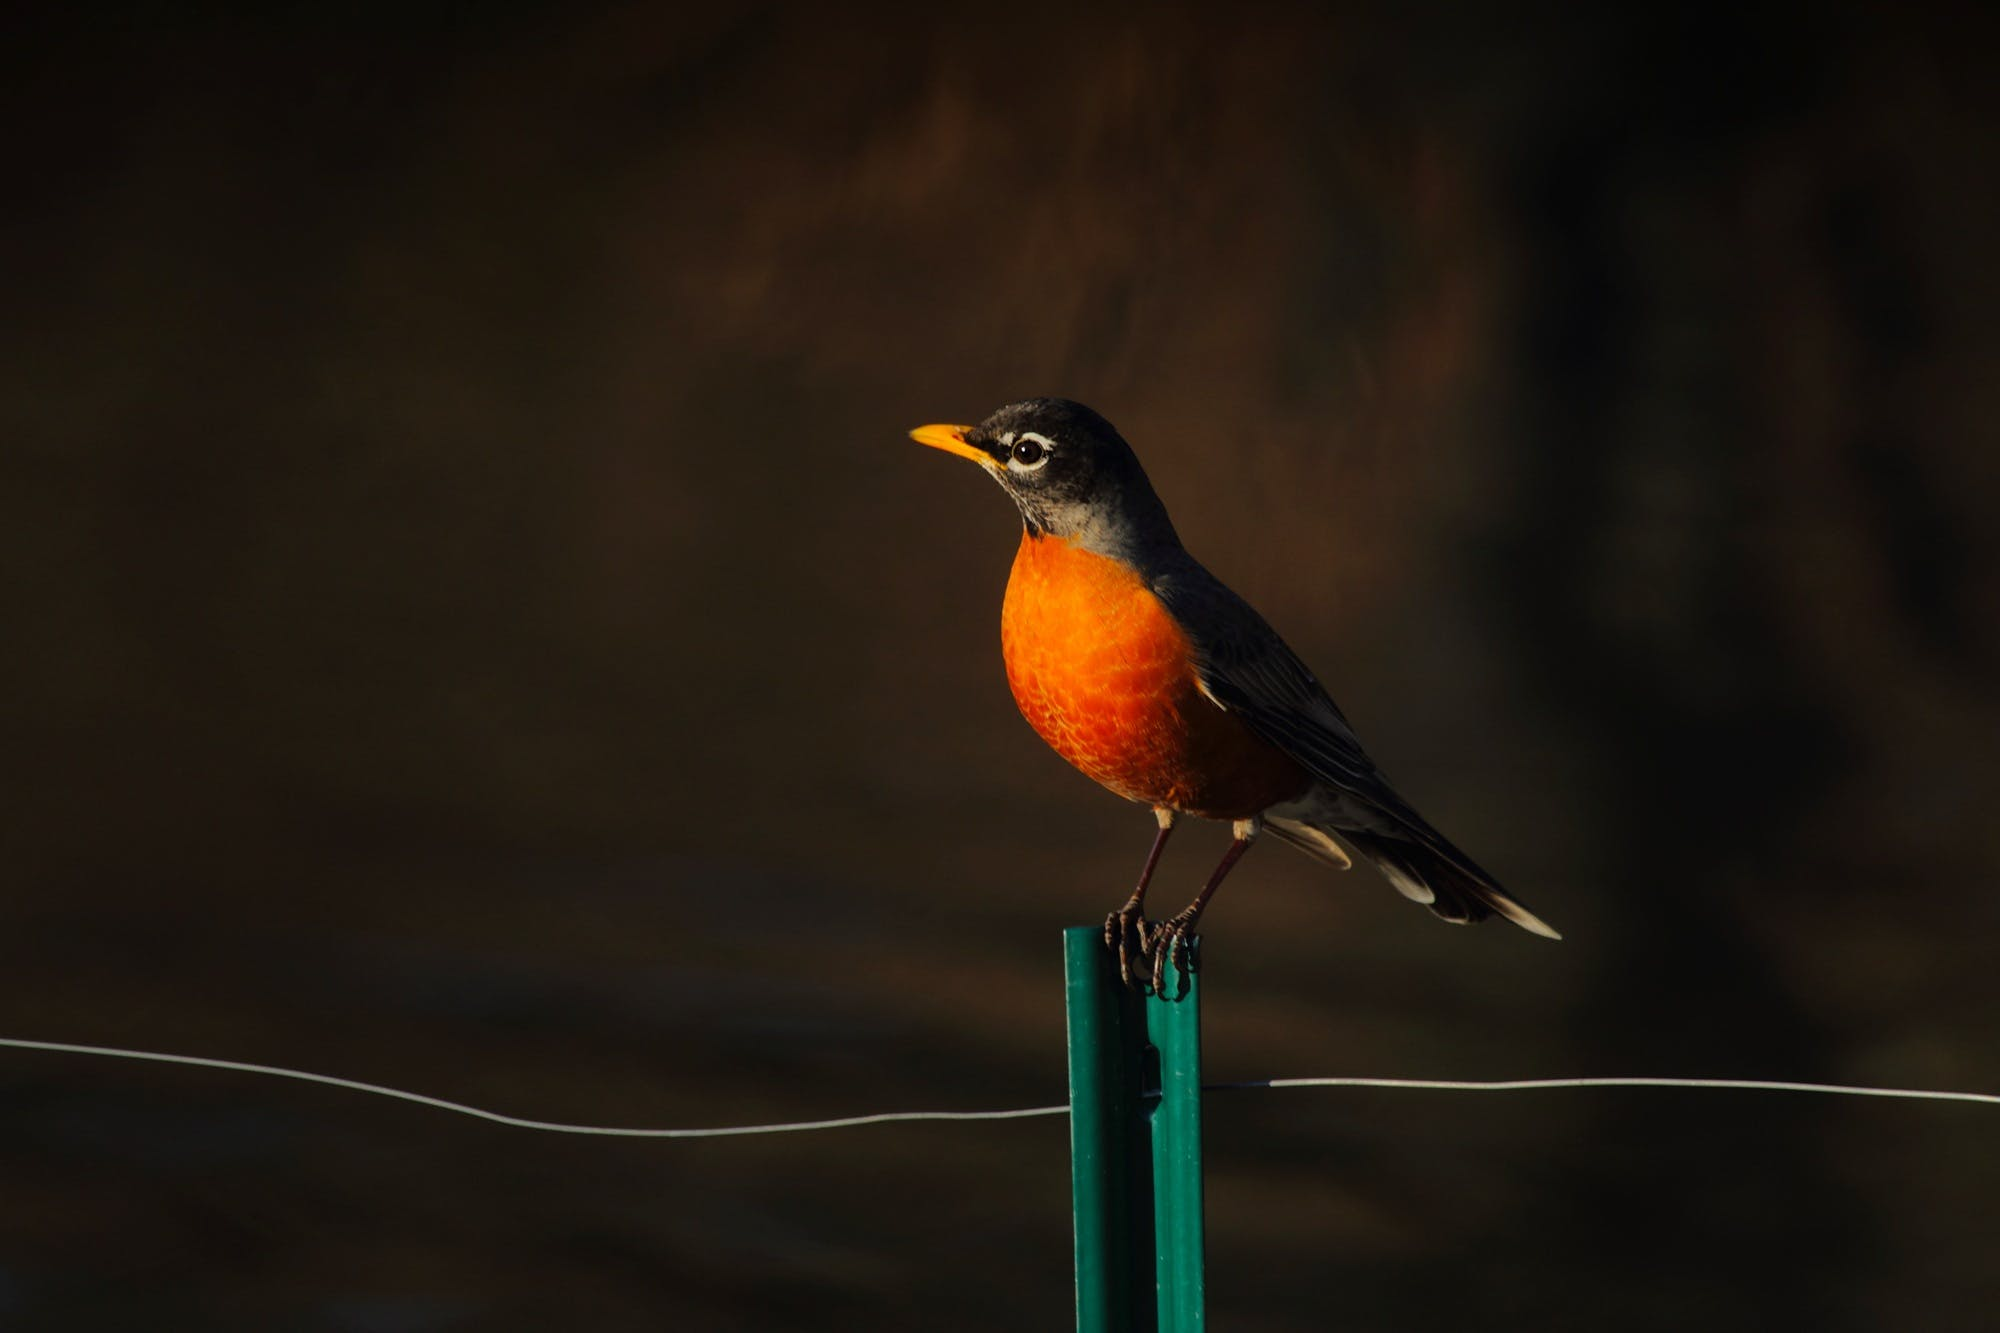 Bird Perched on Stand